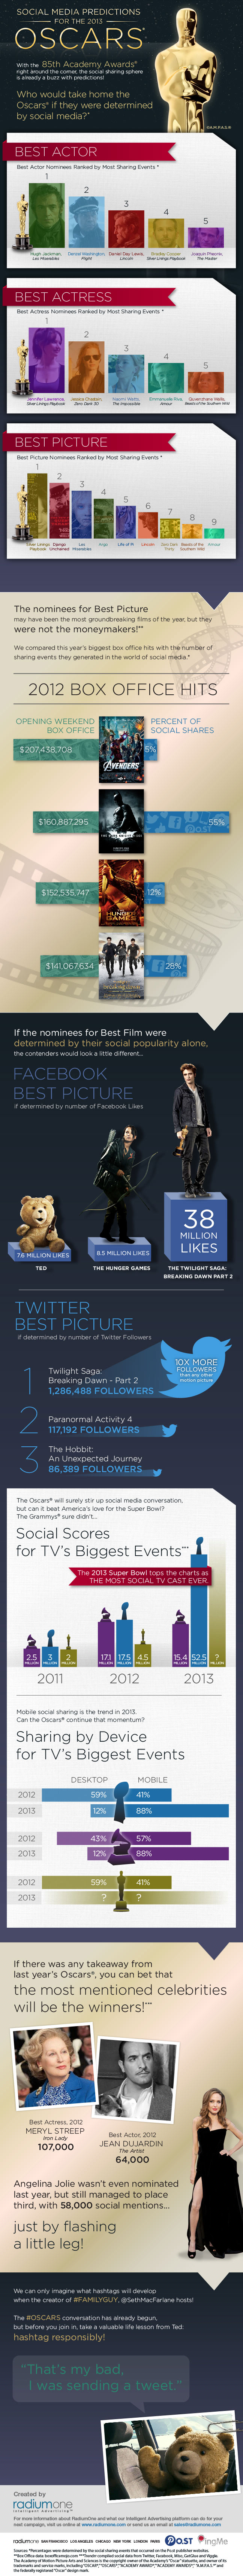 _Oscar-Infographic-Final-Digital